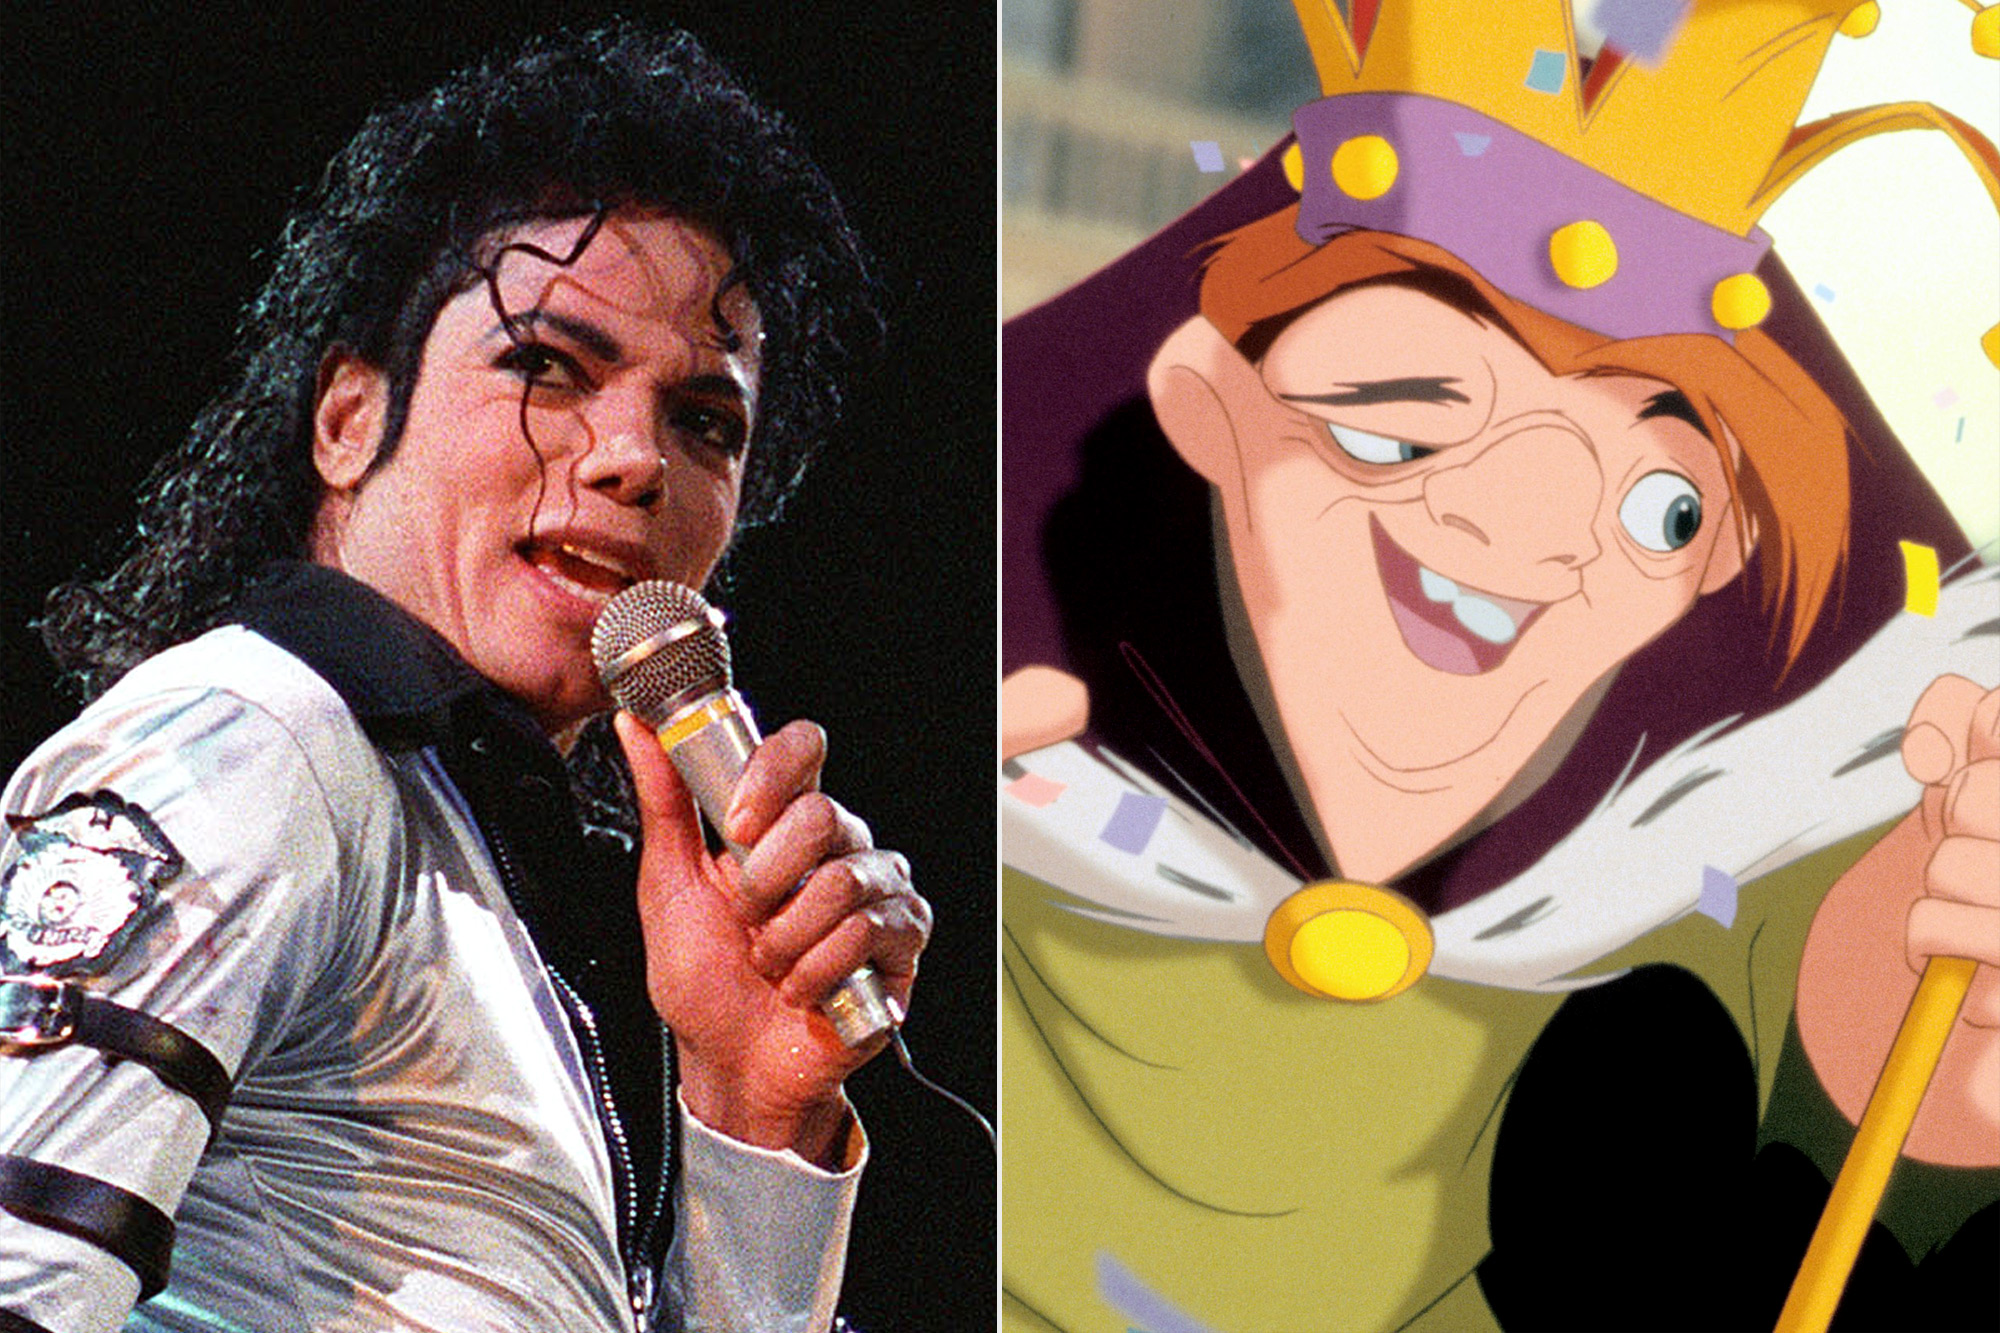 Michael Jackson wanted to be a part of 'Hunchback of Notre Dame